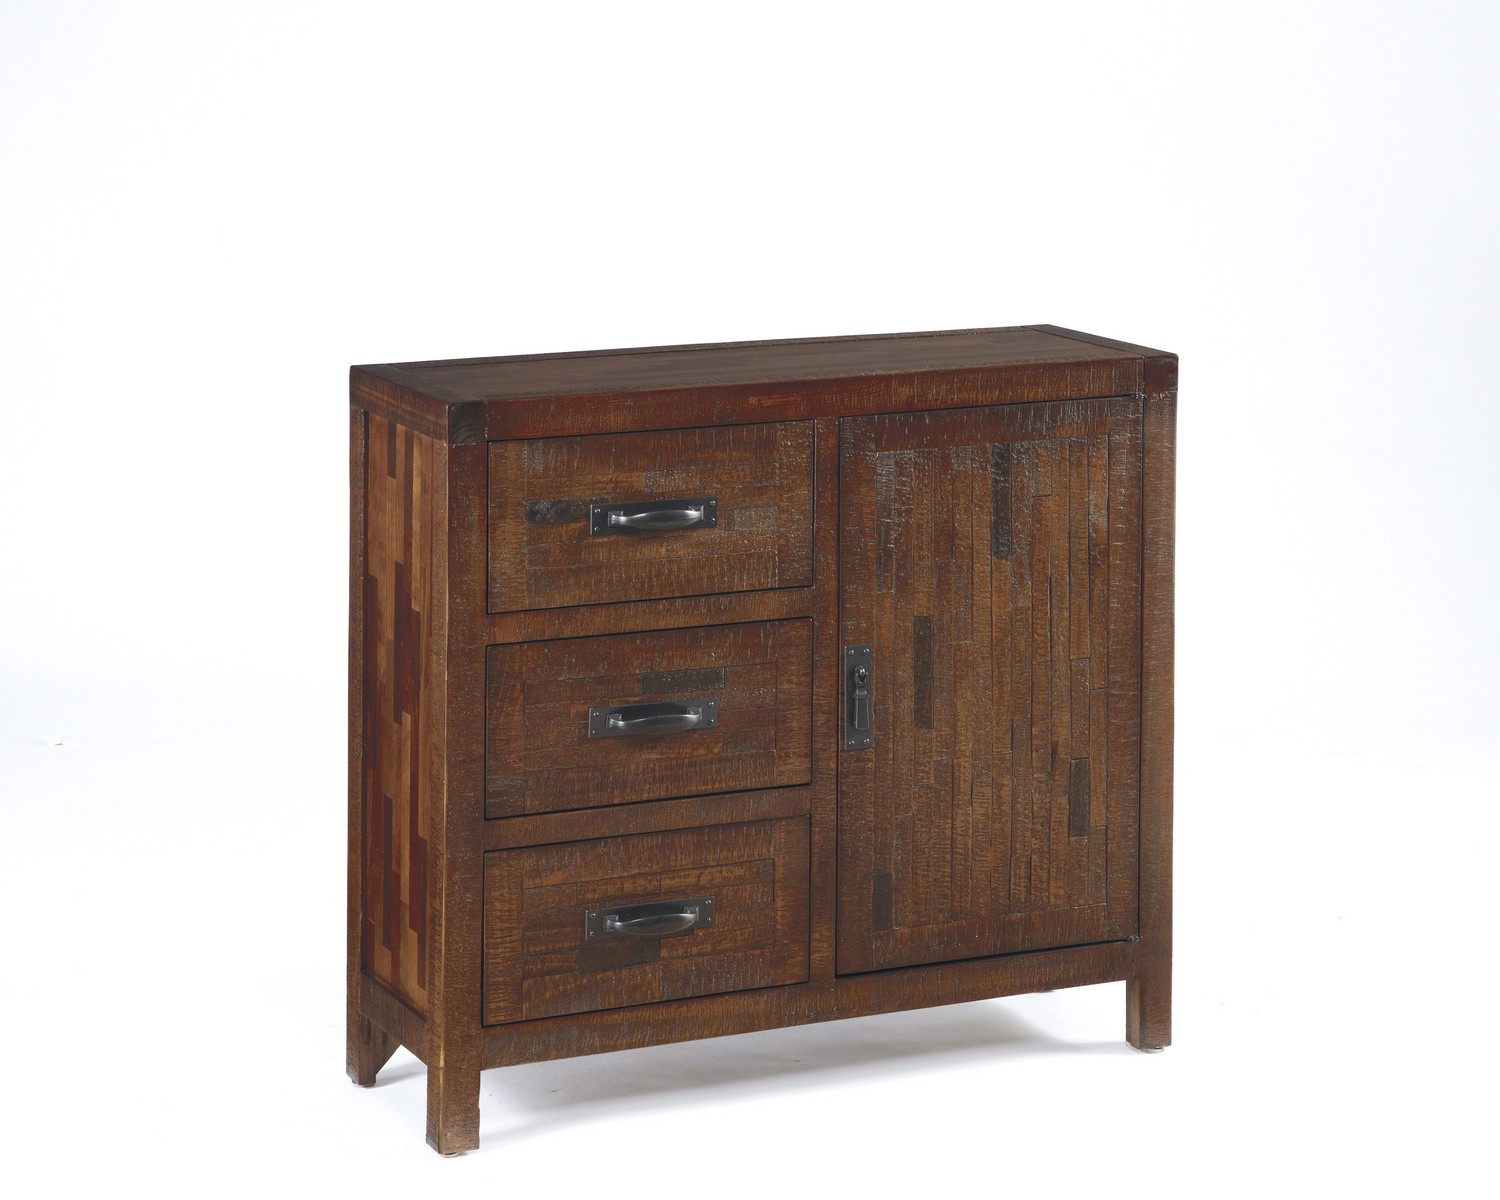 Ashley Rustic Accents Accent Cabinet ASHLEY